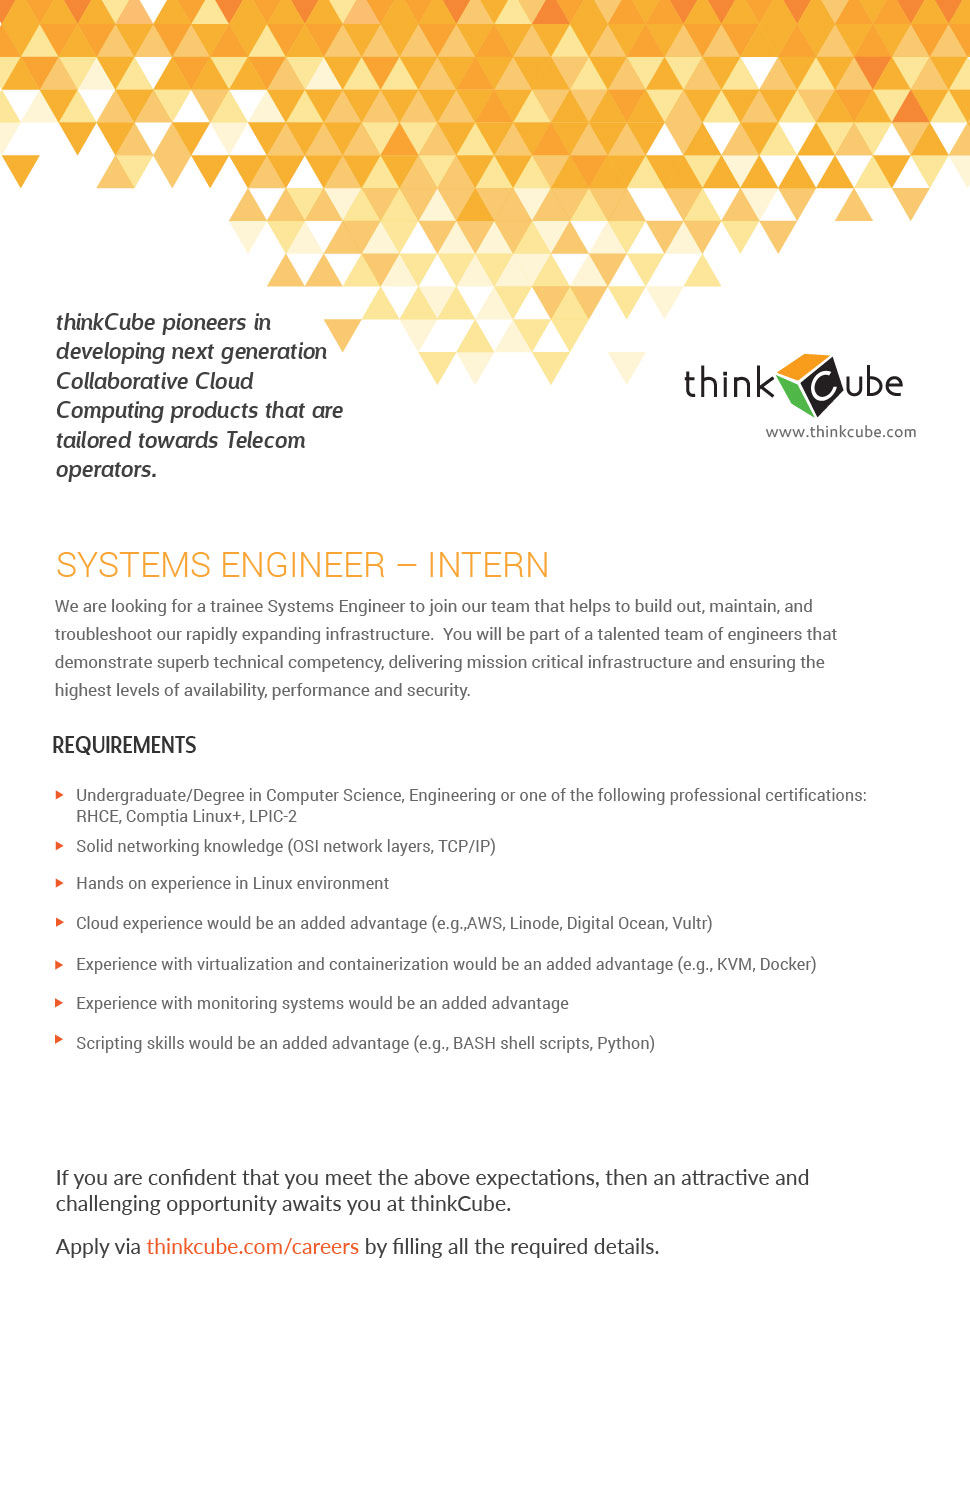 INTERN - SYSTEMS ENGINEER